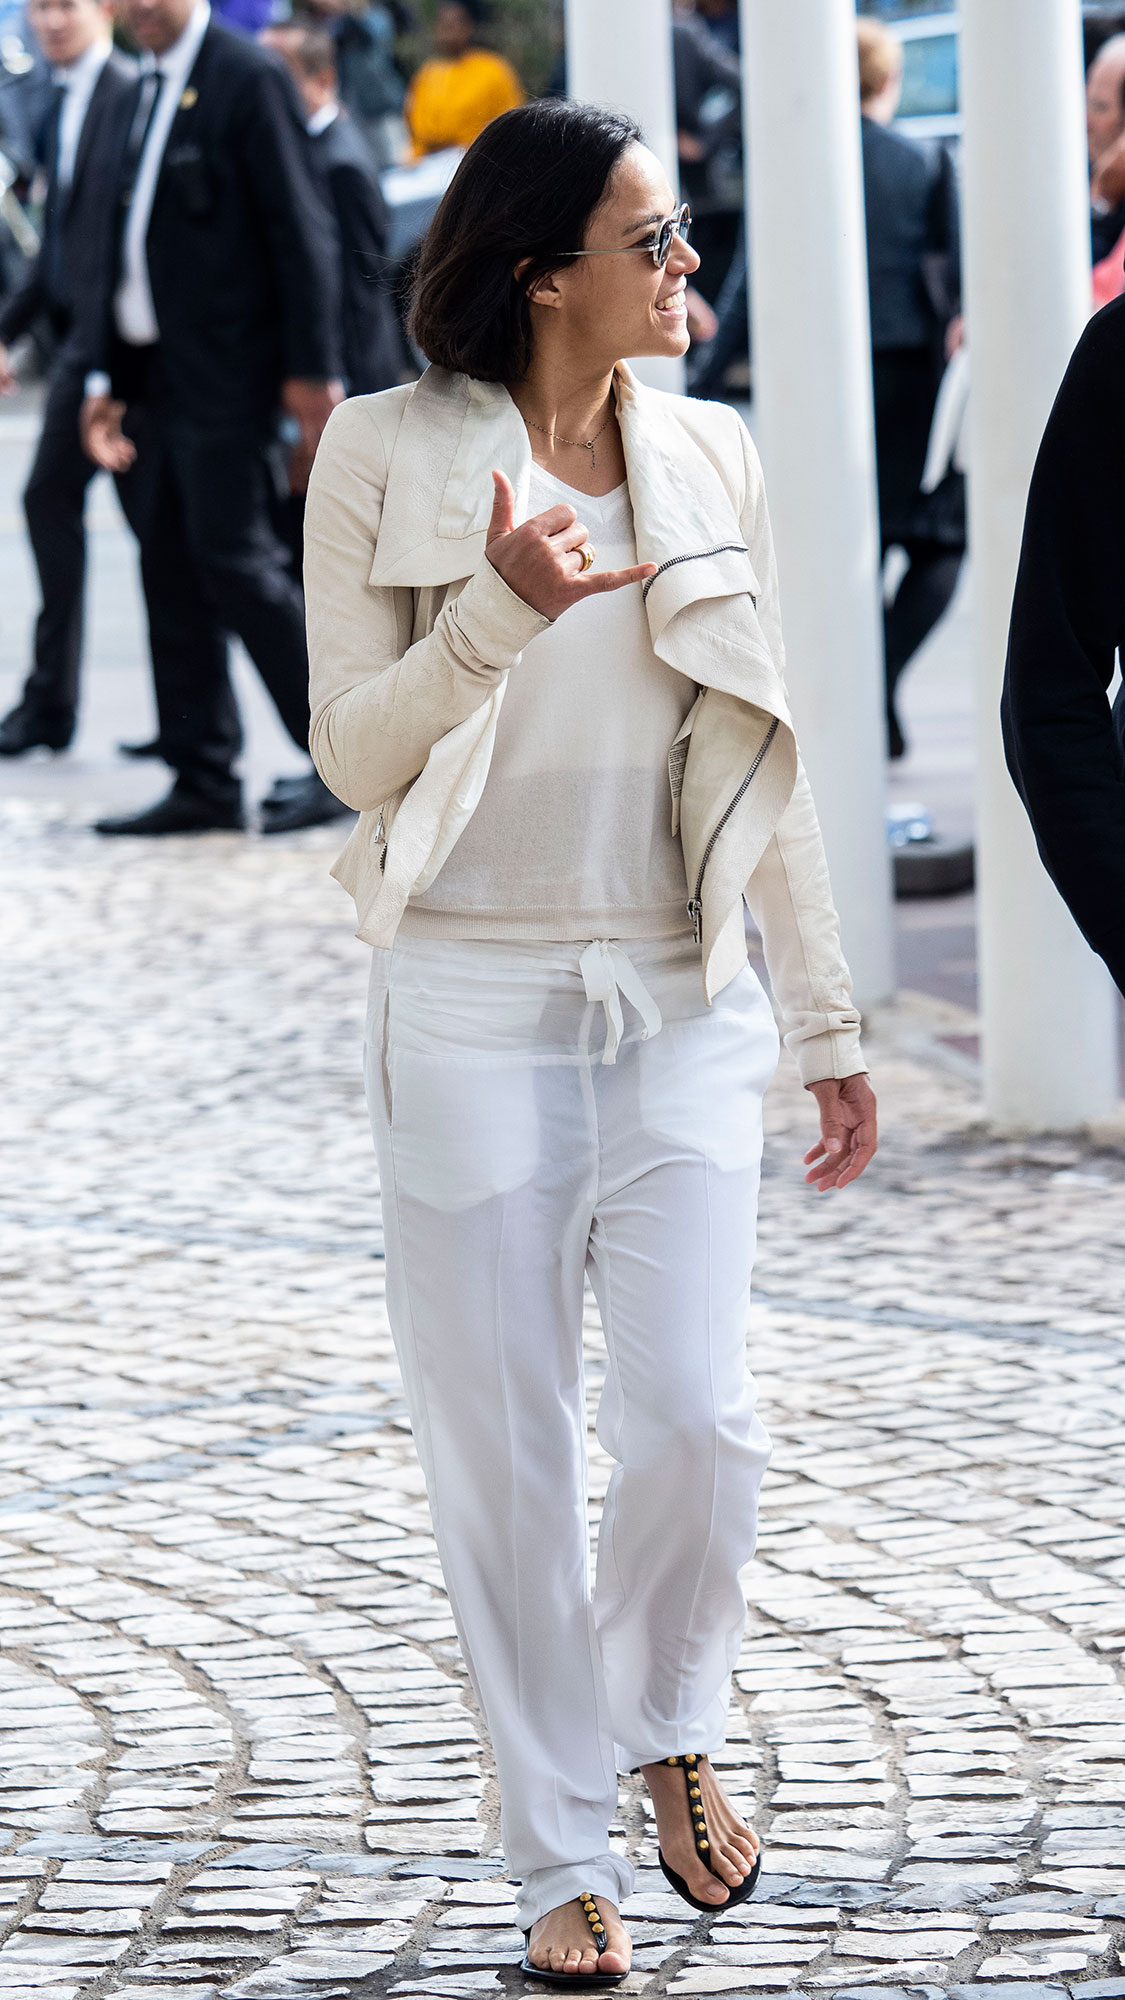 Michelle Rodriguez Memorial Day White - Hanging out between events at the Cannes Film Festival, the actress gave Us the ultimate summer day inspo in linen pants, sandals and a white tee on May 20, 2019.